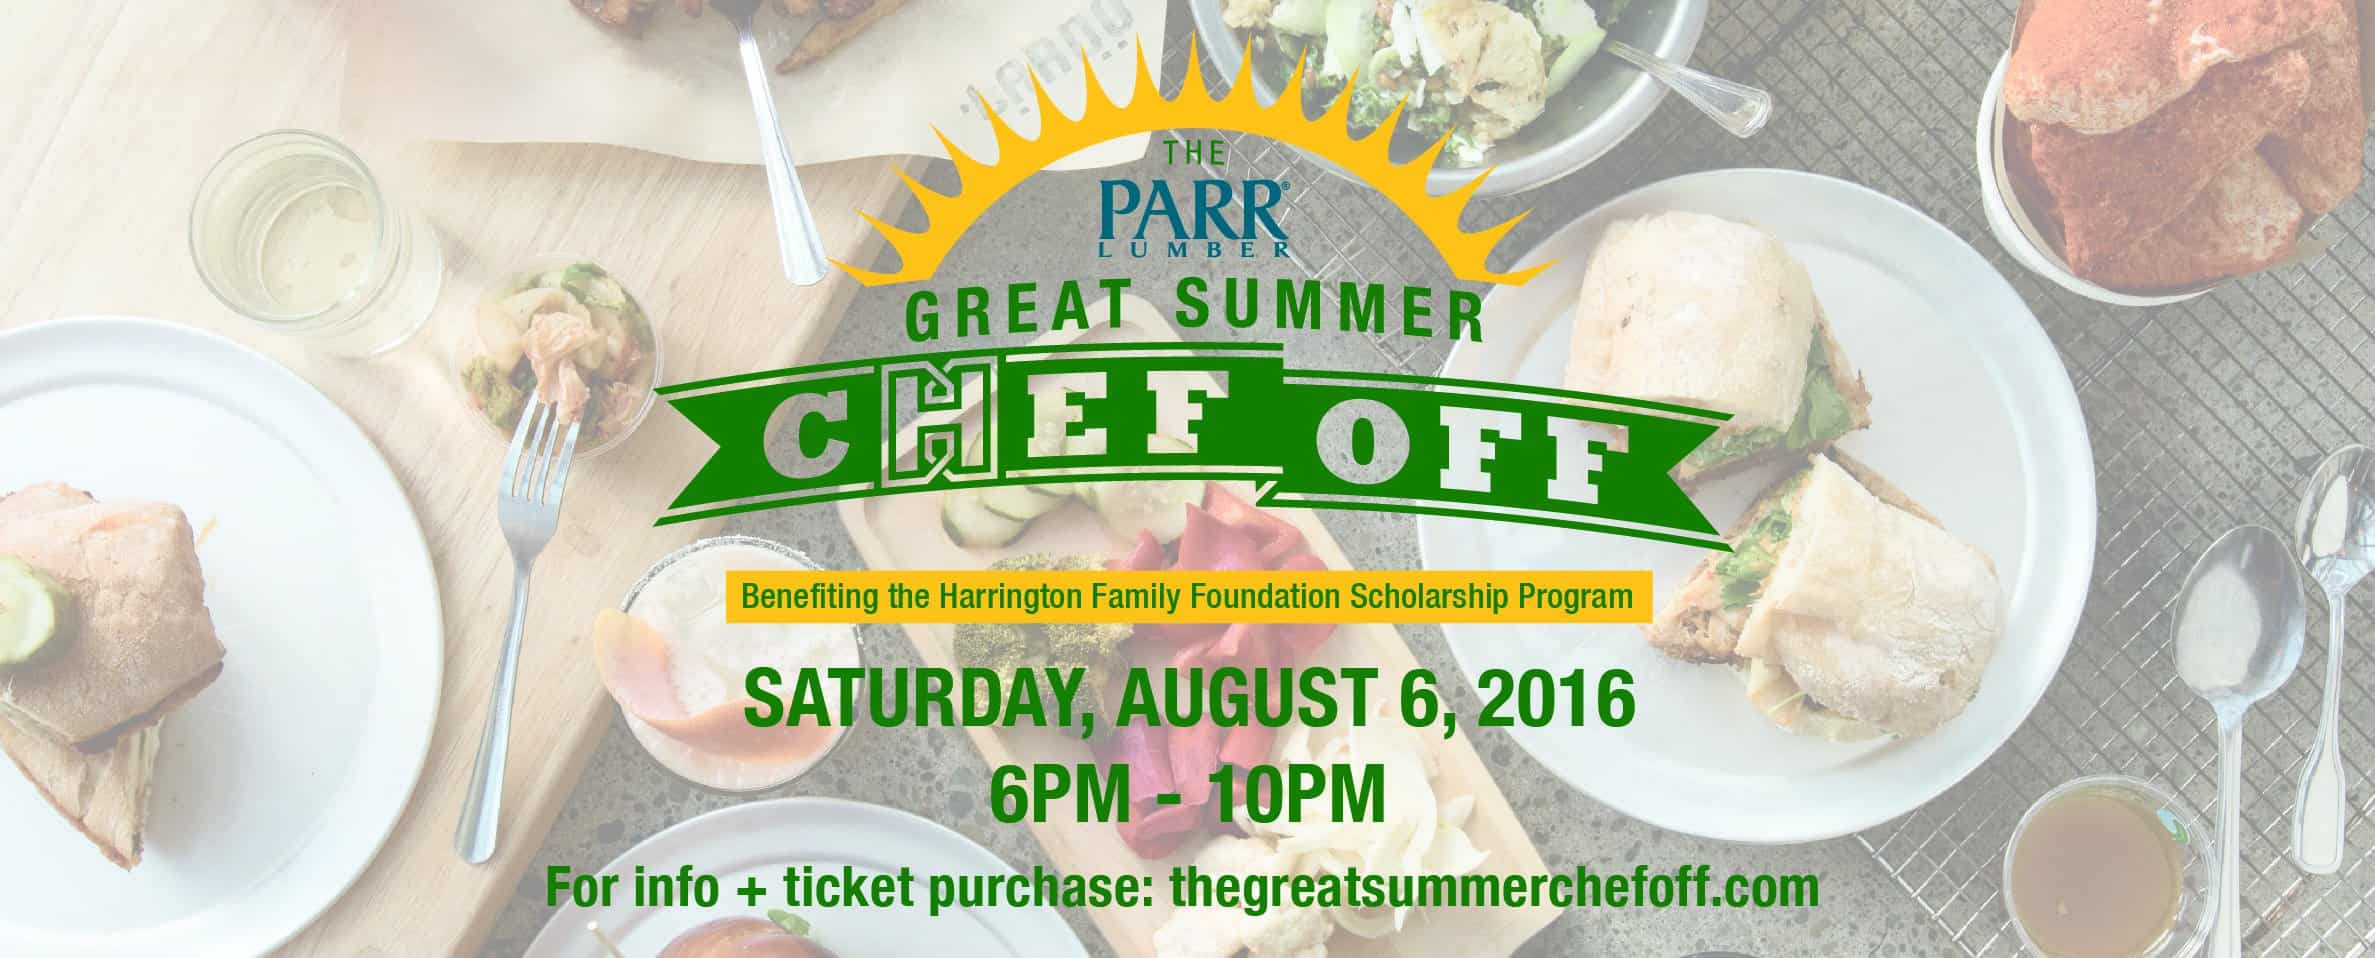 The Parr Lumber Great Summer Chef Off is back and tickets are selling out!